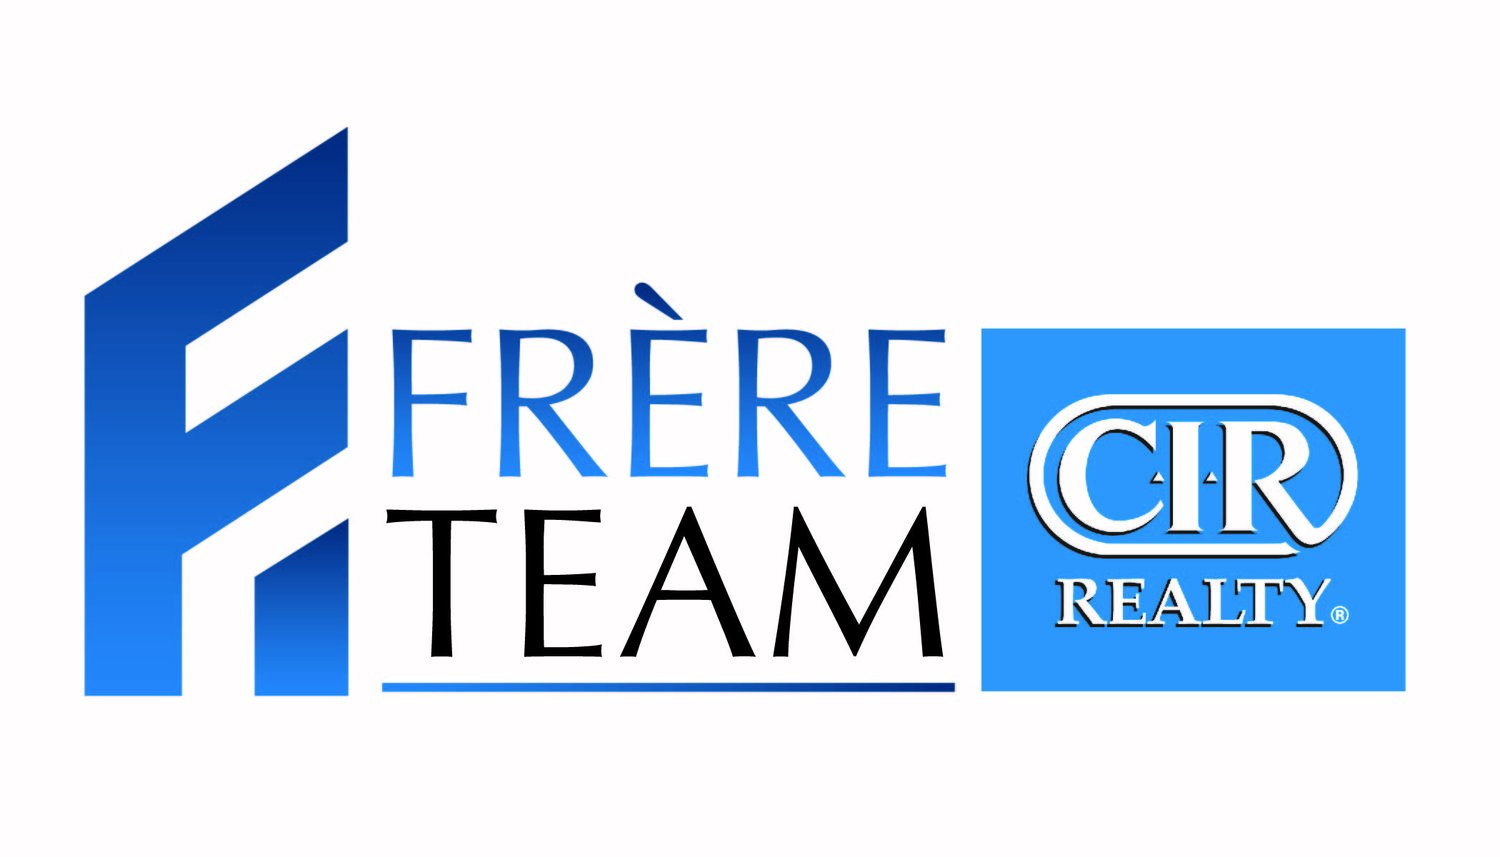 Frère Team at CIR Realty